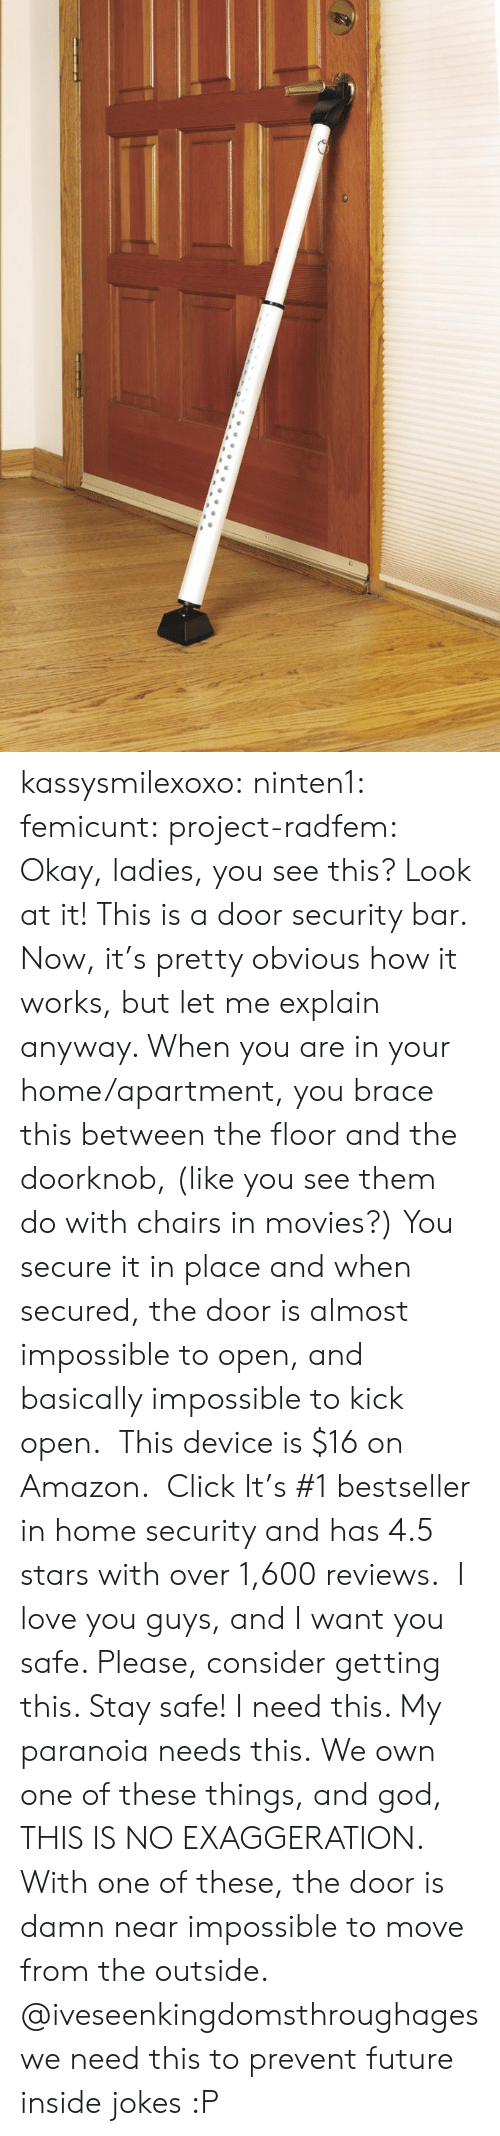 In Home: kassysmilexoxo:  ninten1:  femicunt:  project-radfem:   Okay, ladies, you see this? Look at it! This is a door security bar. Now, it's pretty obvious how it works, but let me explain anyway. When you are in your home/apartment, you brace this between the floor and the doorknob, (like you see them do with chairs in movies?) You secure it in place and when secured, the door is almost impossible to open, and basically impossible to kick open. This device is $16 on Amazon.Click It's #1 bestseller in home security and has 4.5 stars with over 1,600 reviews. I love you guys, and I want you safe. Please, consider getting this. Stay safe!  I need this. My paranoia needs this.  We own one of these things, and god, THIS IS NO EXAGGERATION. With one of these, the door is damn near impossible to move from the outside.   @iveseenkingdomsthroughages we need this to prevent future inside jokes :P